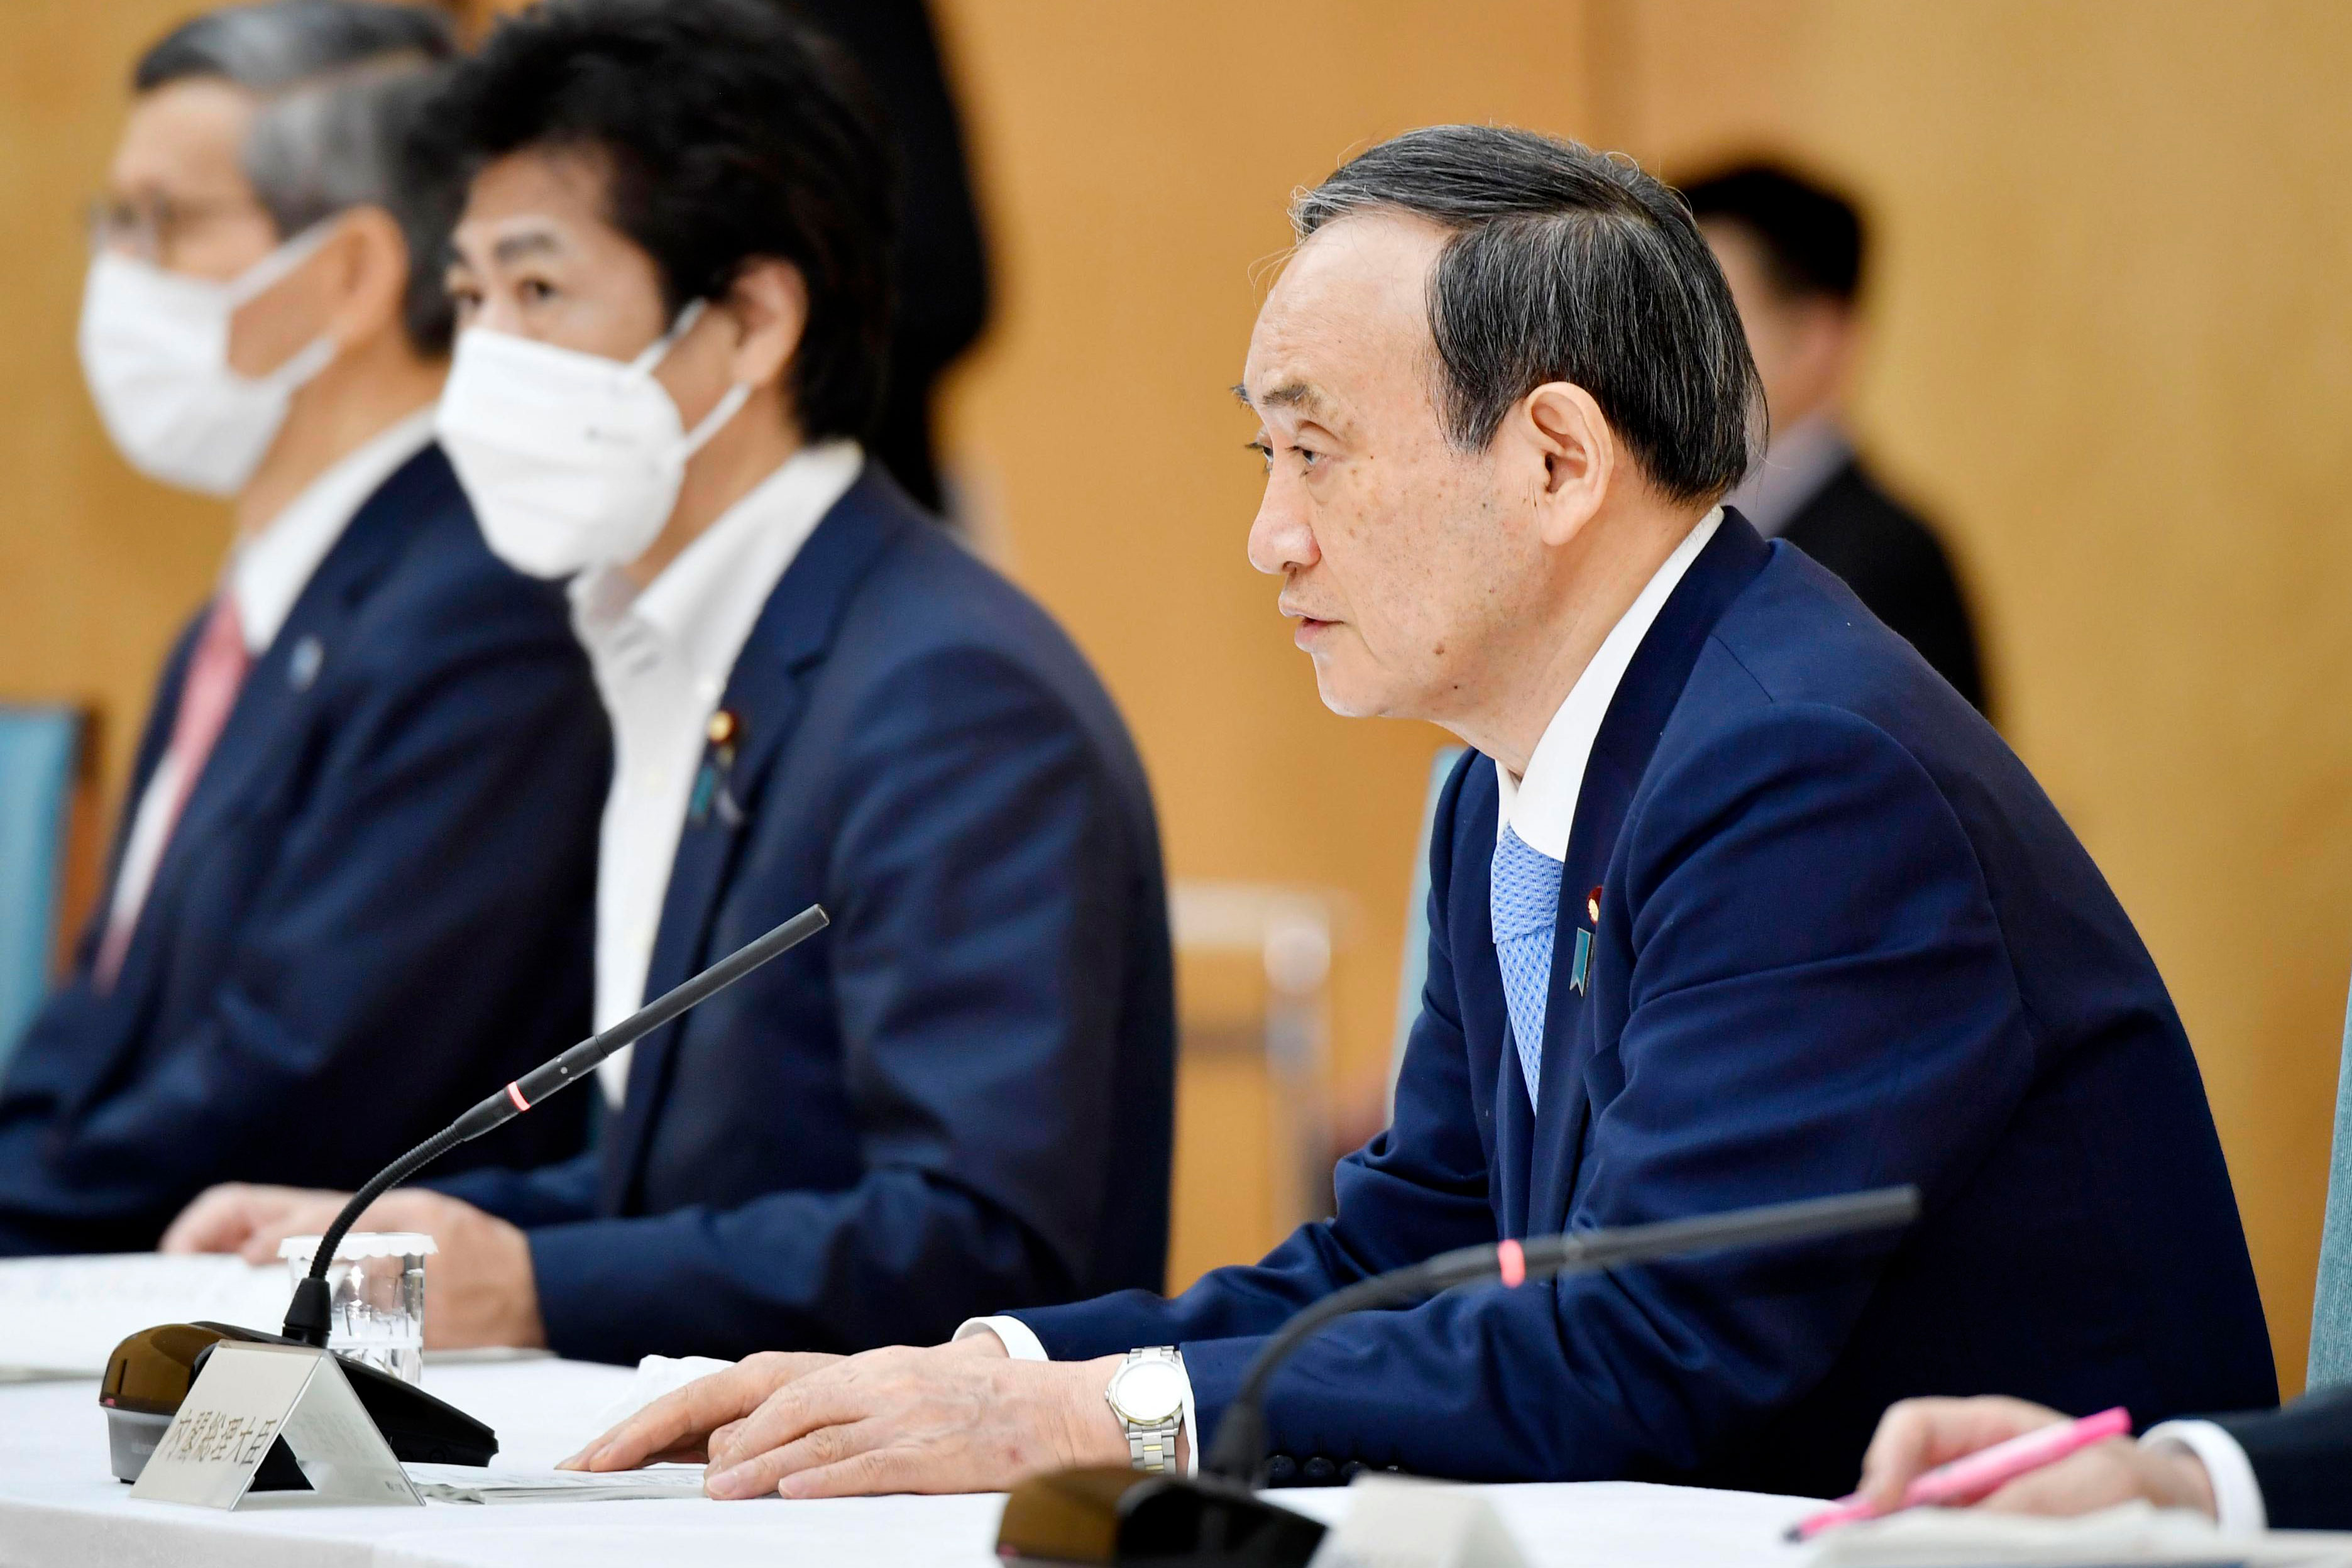 Japanese Prime Minister Yoshihide Suga, right, attends a meeting about Covid-19 in Tokyo on May 28.